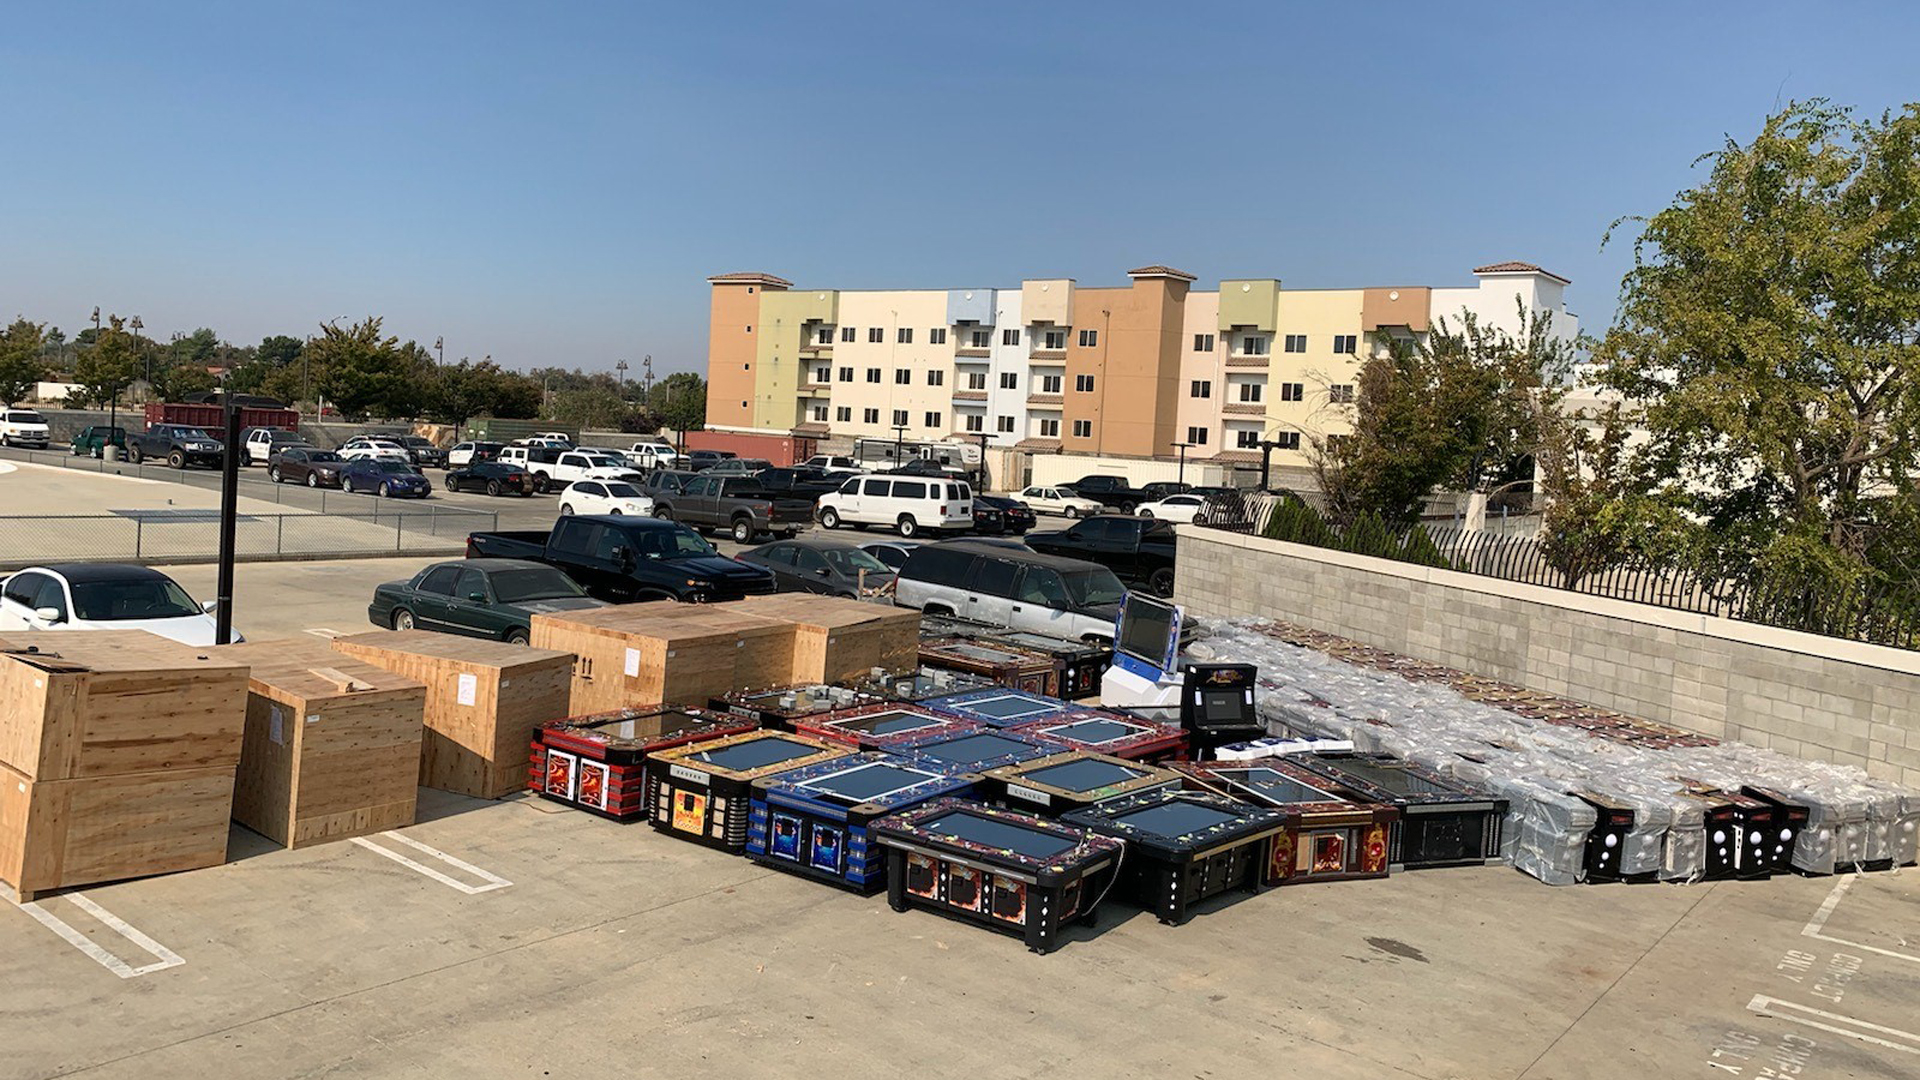 Illegal gambling machines seized during an investigation are shown in a photo released by the Los Angeles County Sheriff's Department on Oct. 21, 2020.